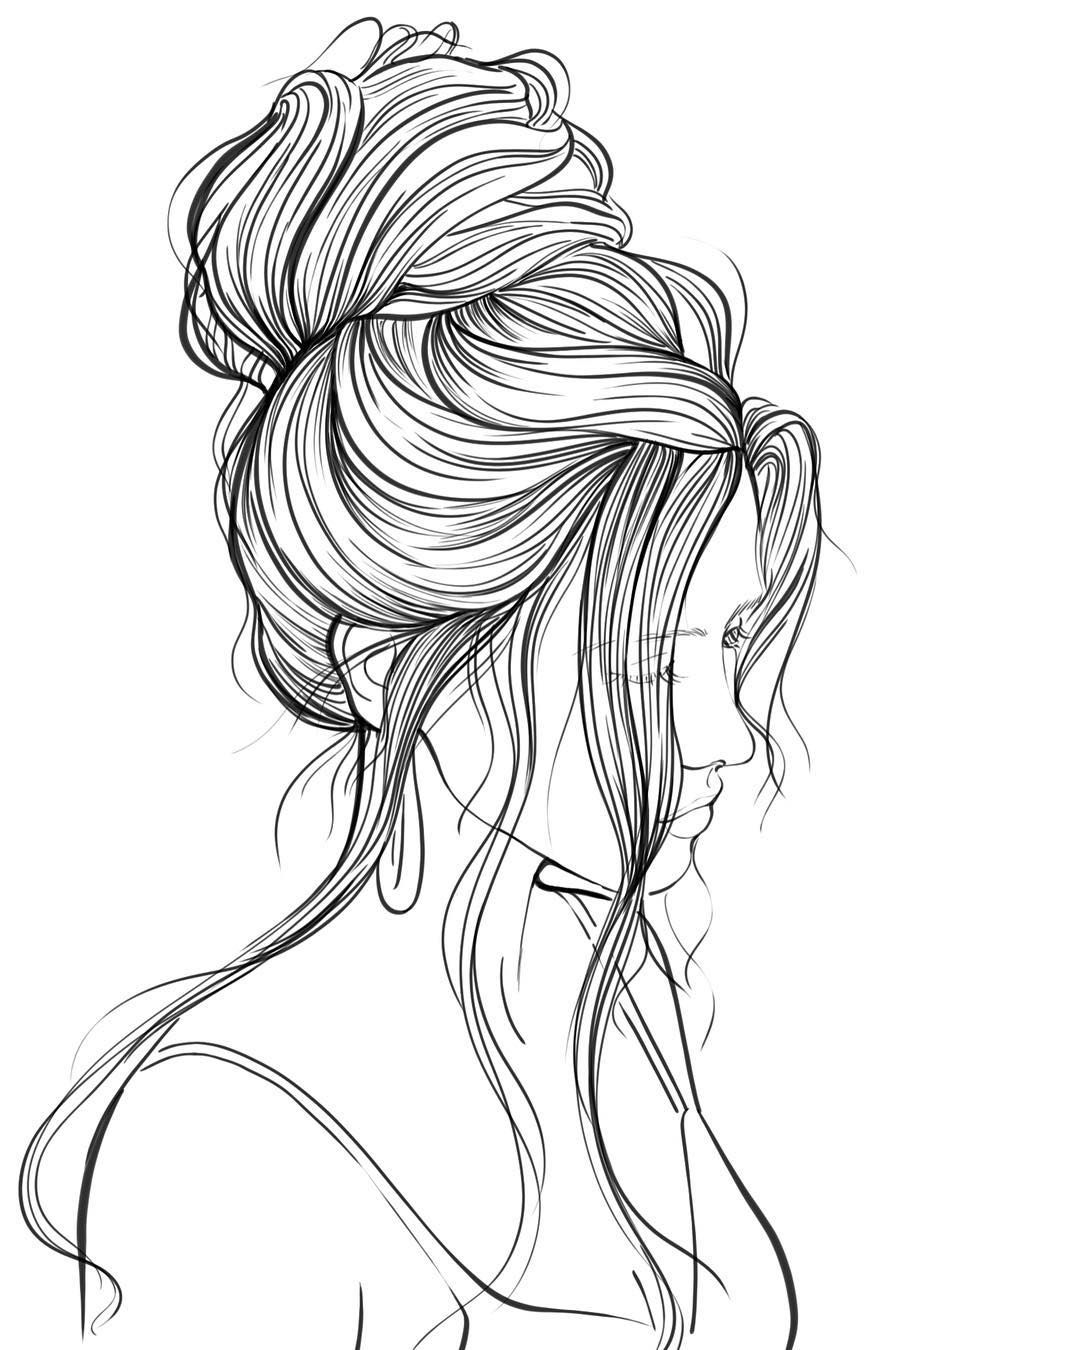 Fashion Fashionillustration Illustration Illustrator Fashionillustrator Drawadot Girl Drawing Sketches People Coloring Pages Art Drawings Sketches Simple